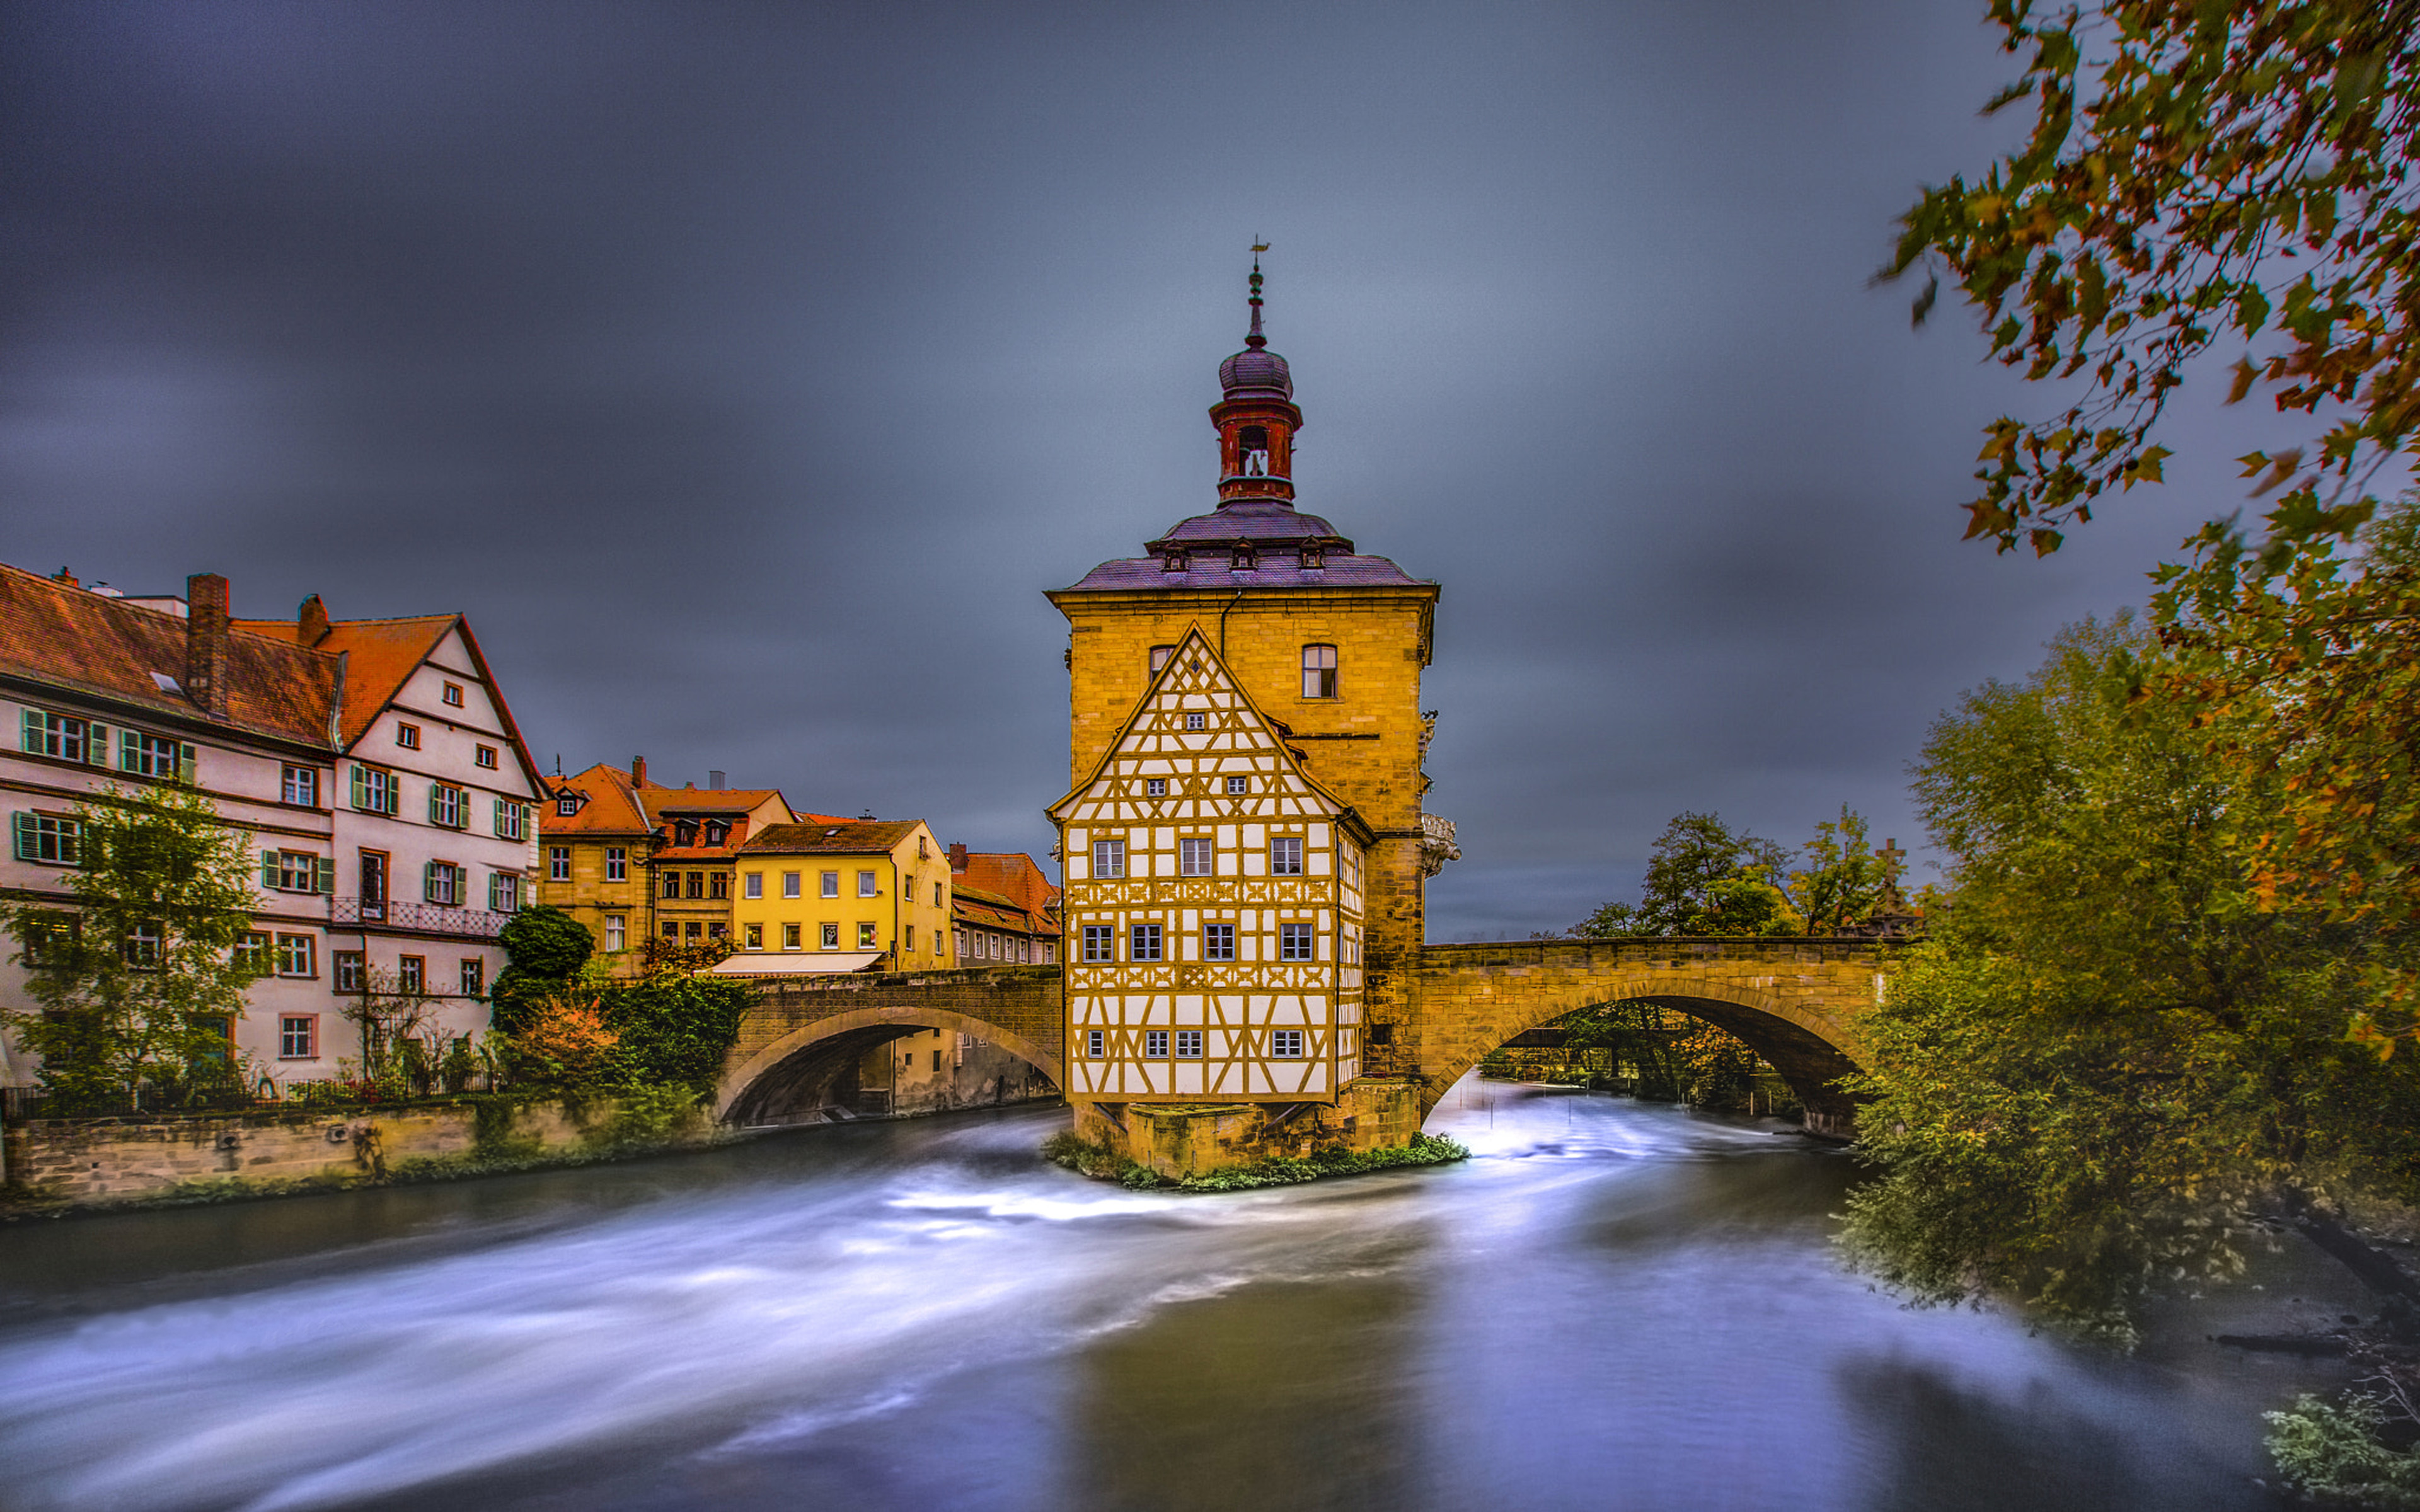 Wallpaper Batman Iphone X Bamberg Is A City In Northern Bavaria Germany Landscape